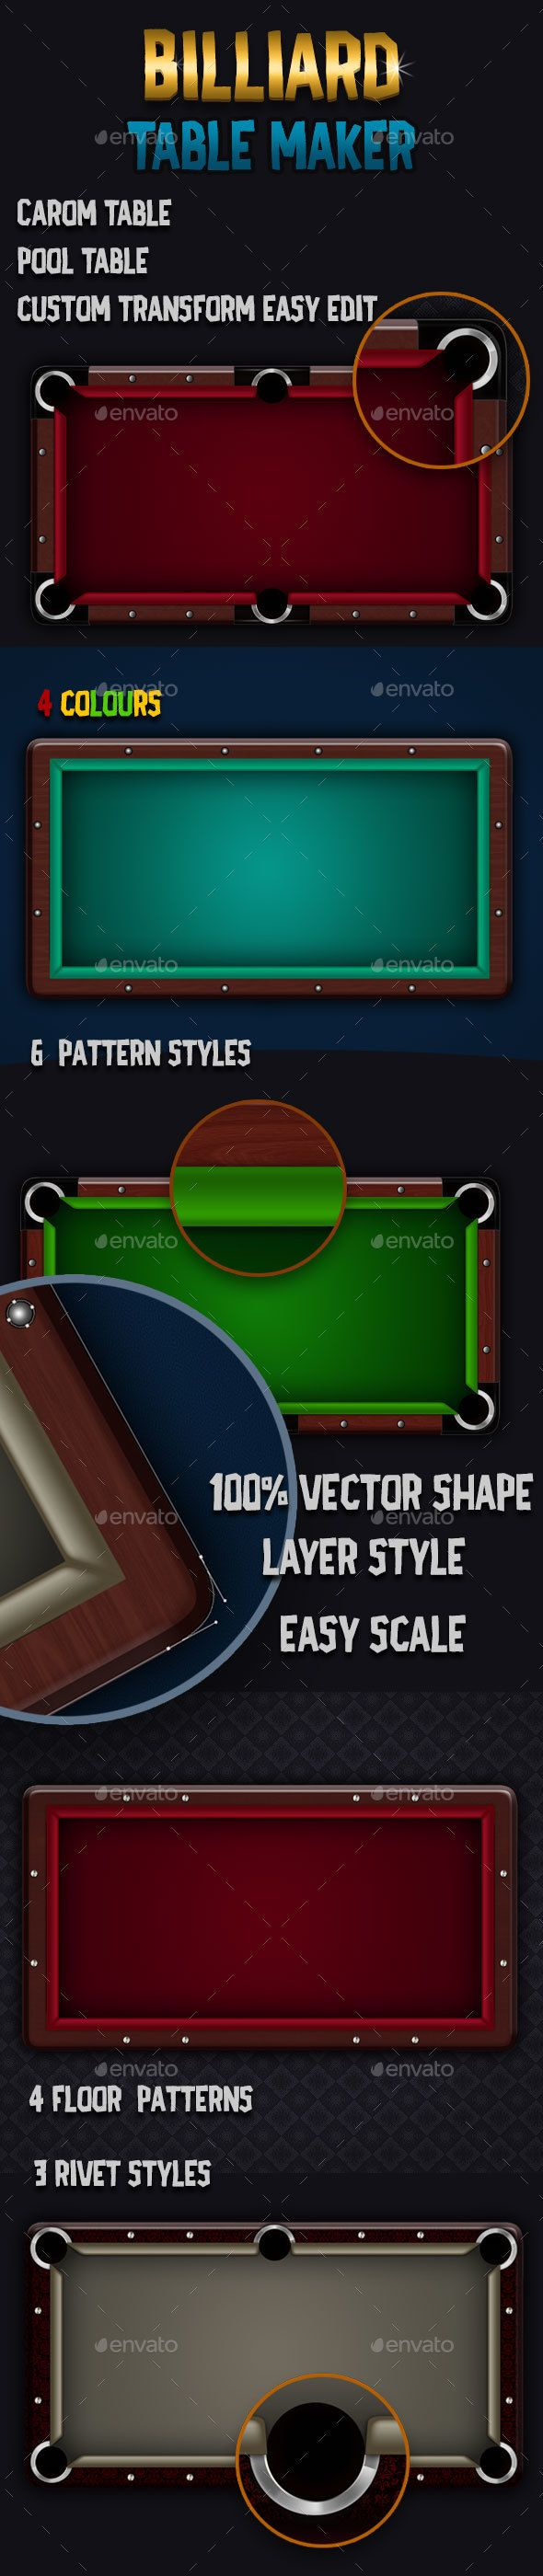 Billiards Table Maker - Miscellaneous Game Assets